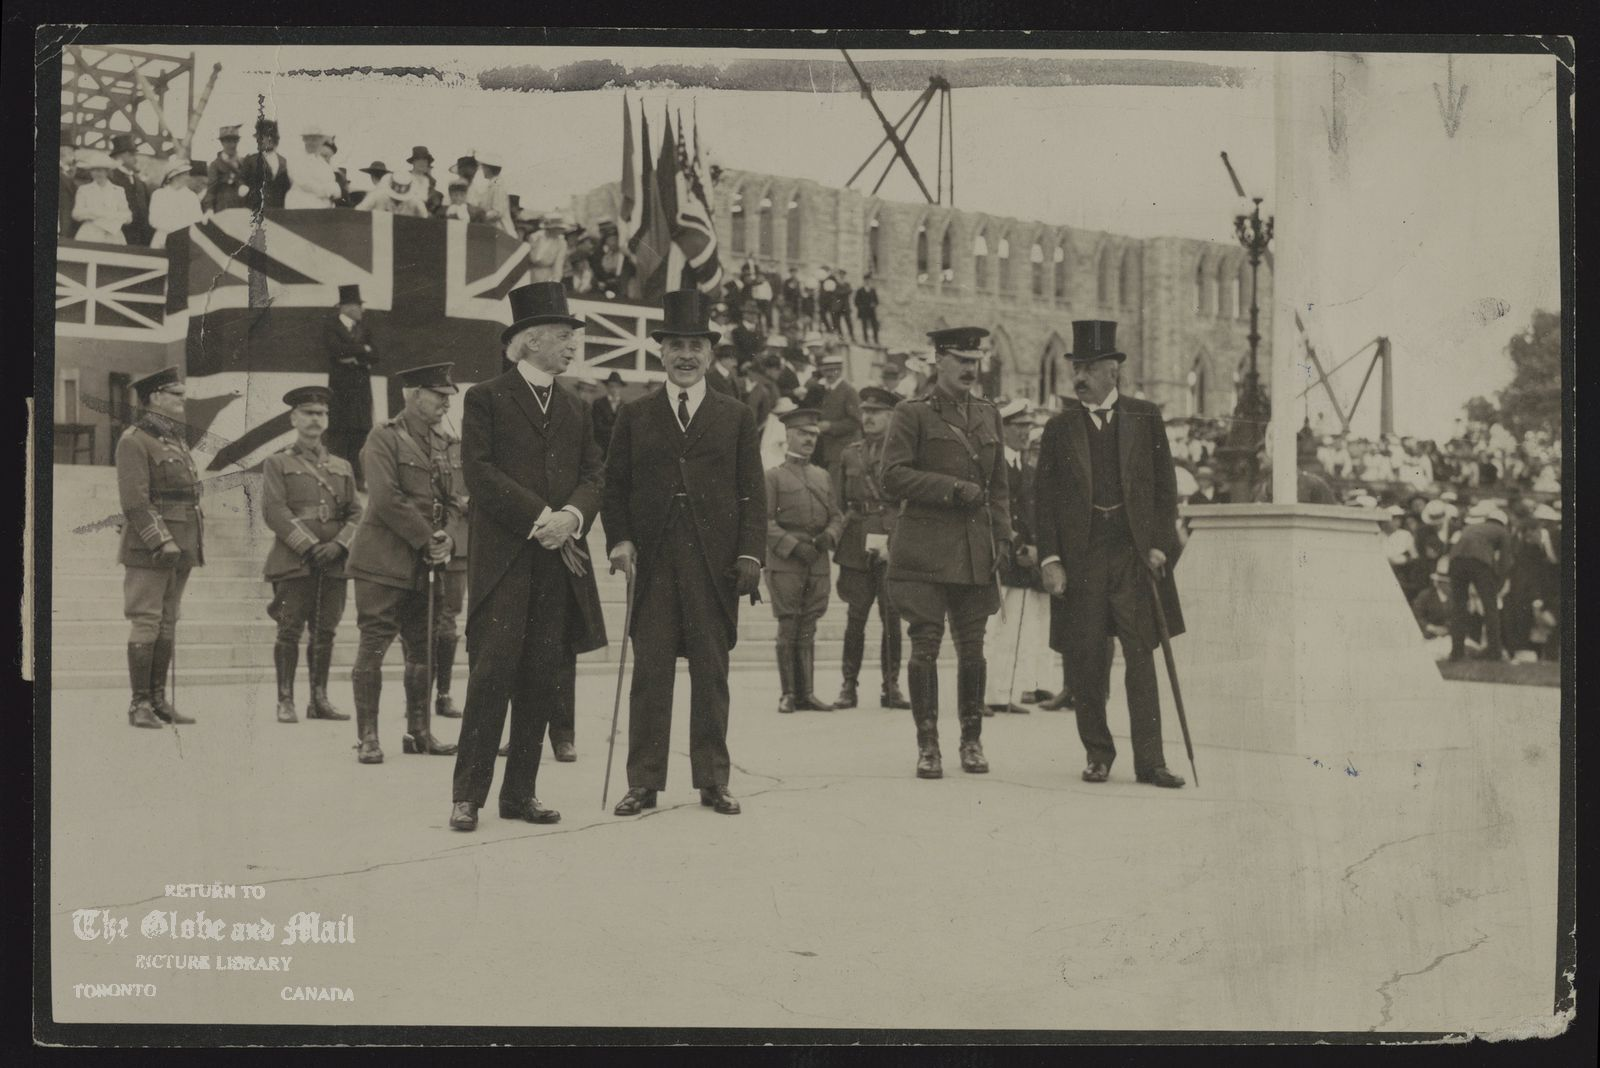 Sir Wilfrid Laurier at the 1911 Imperial Conference in June. Photographic Service of British & Colonial Press Ltd. Toronto, Canada.